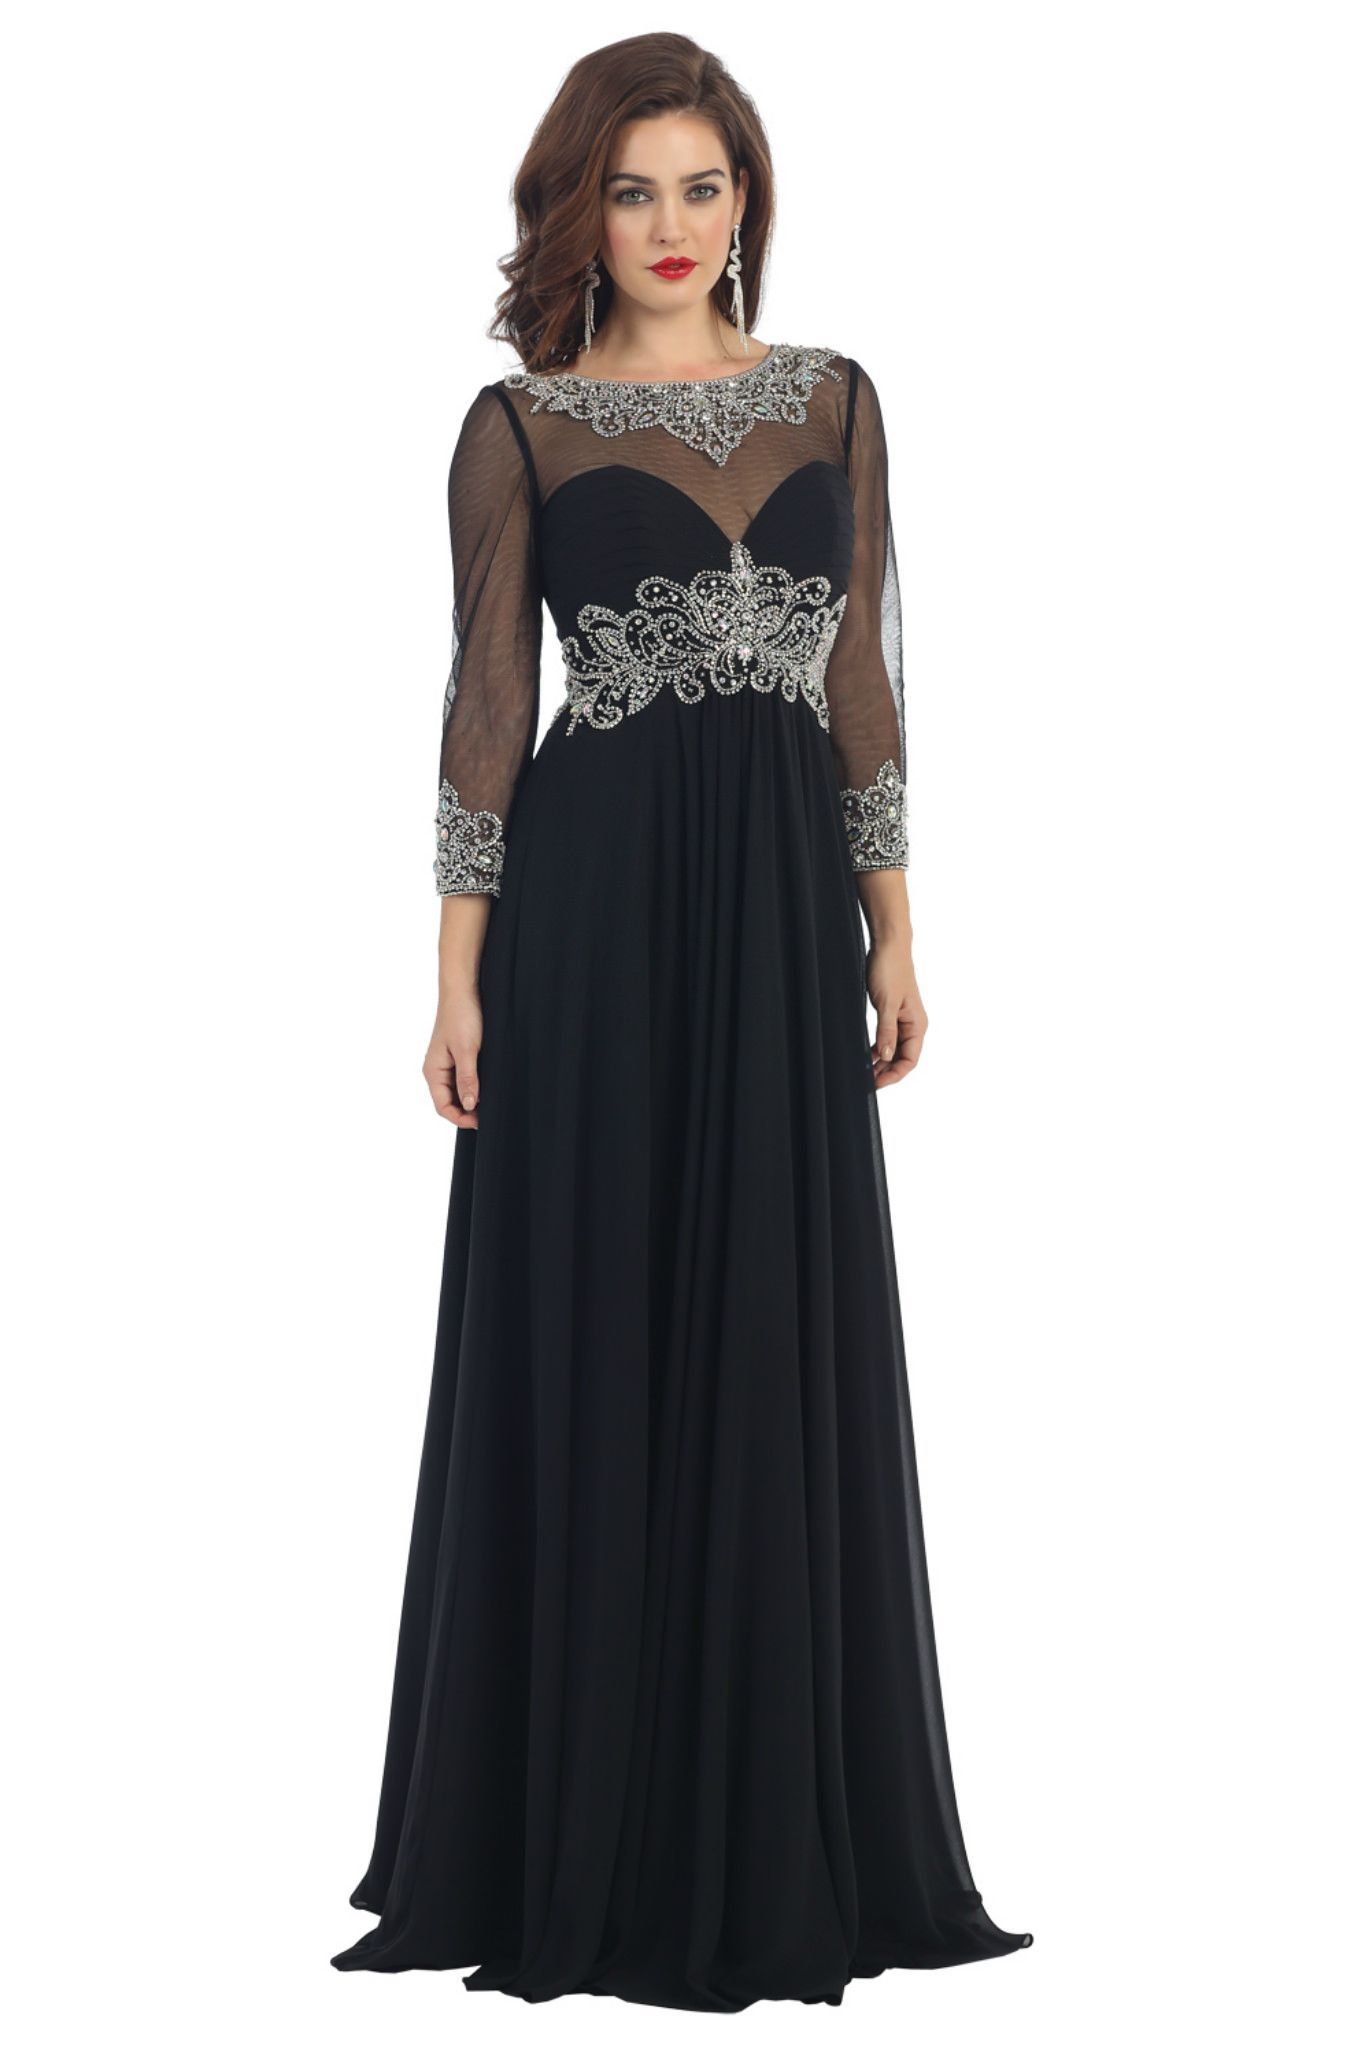 Plus size wedding guest dresses with sleeves  Long Sleeve Plus Size Mother of the Bride Formal Gown  Homecoming